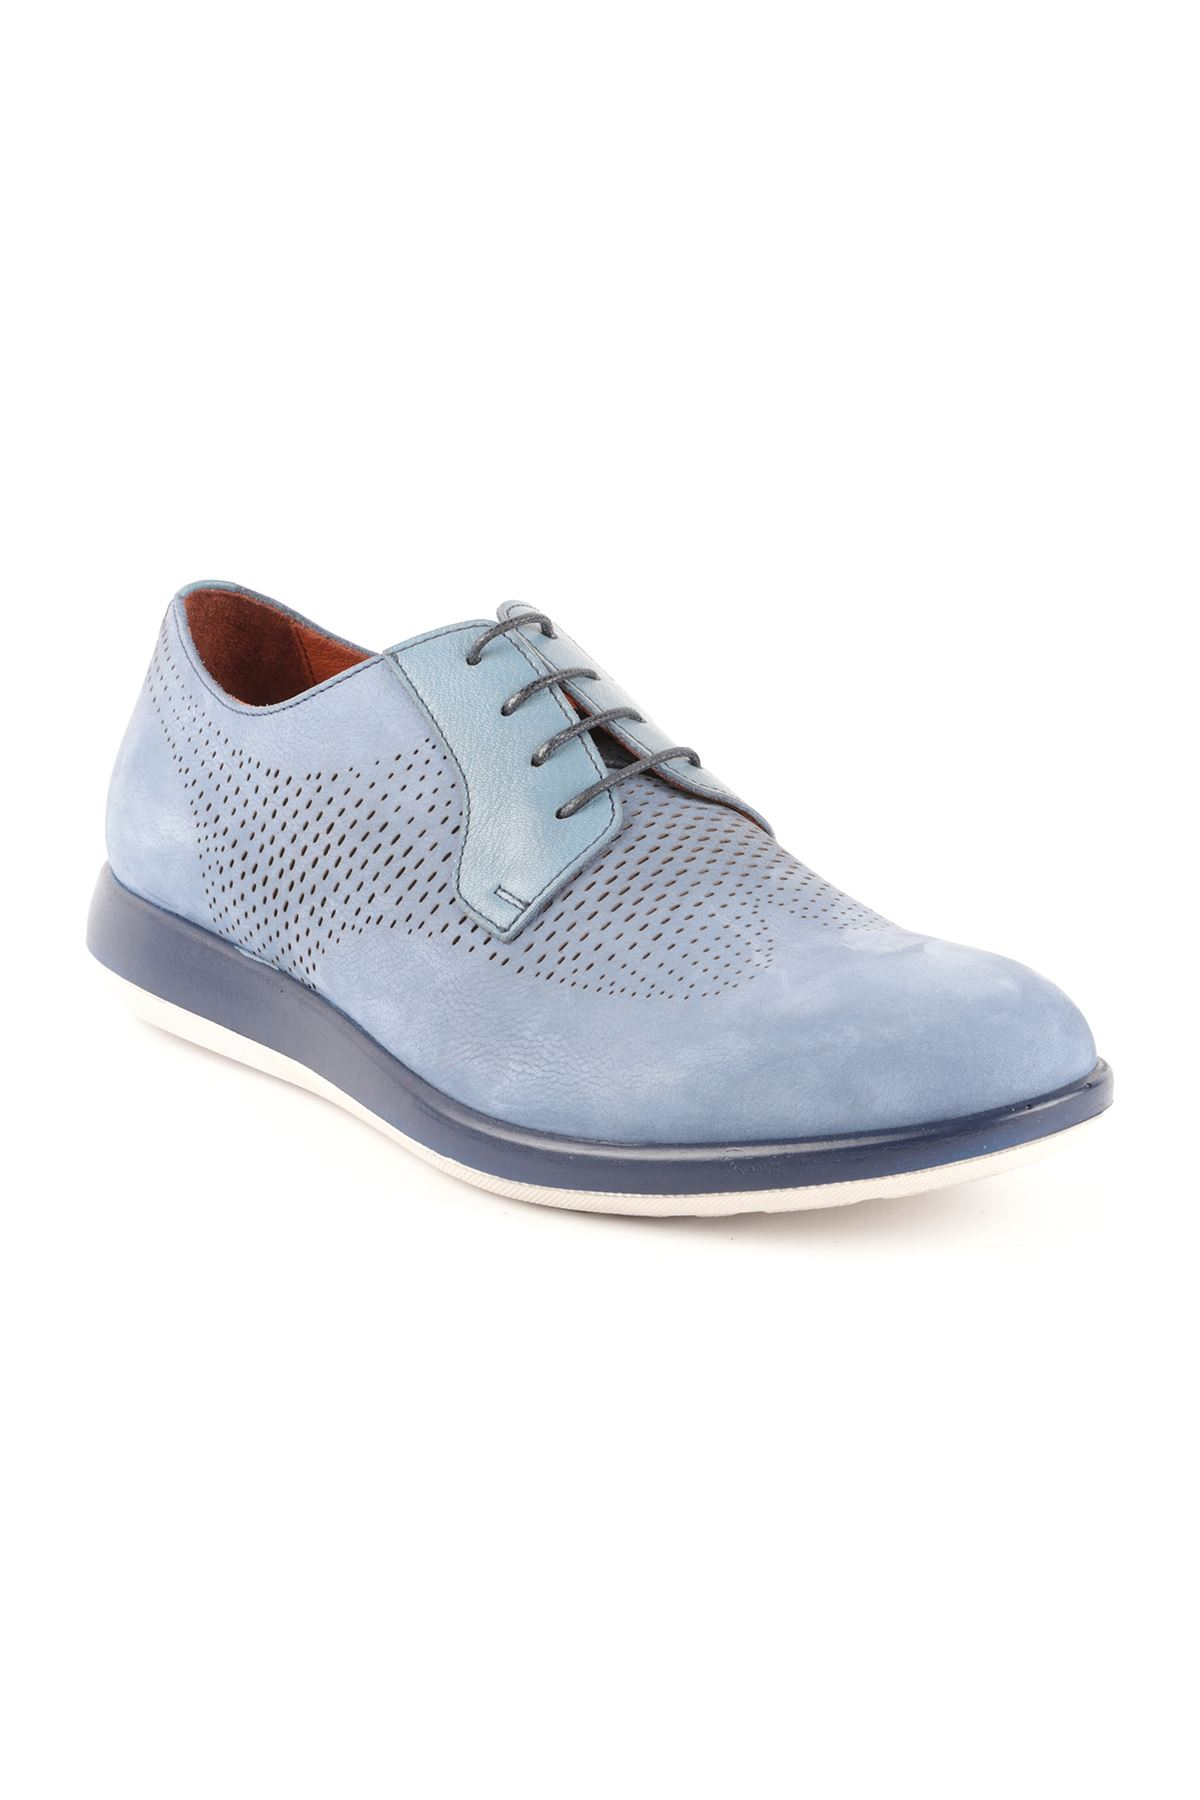 Libero T1413 Blue Casual Shoes